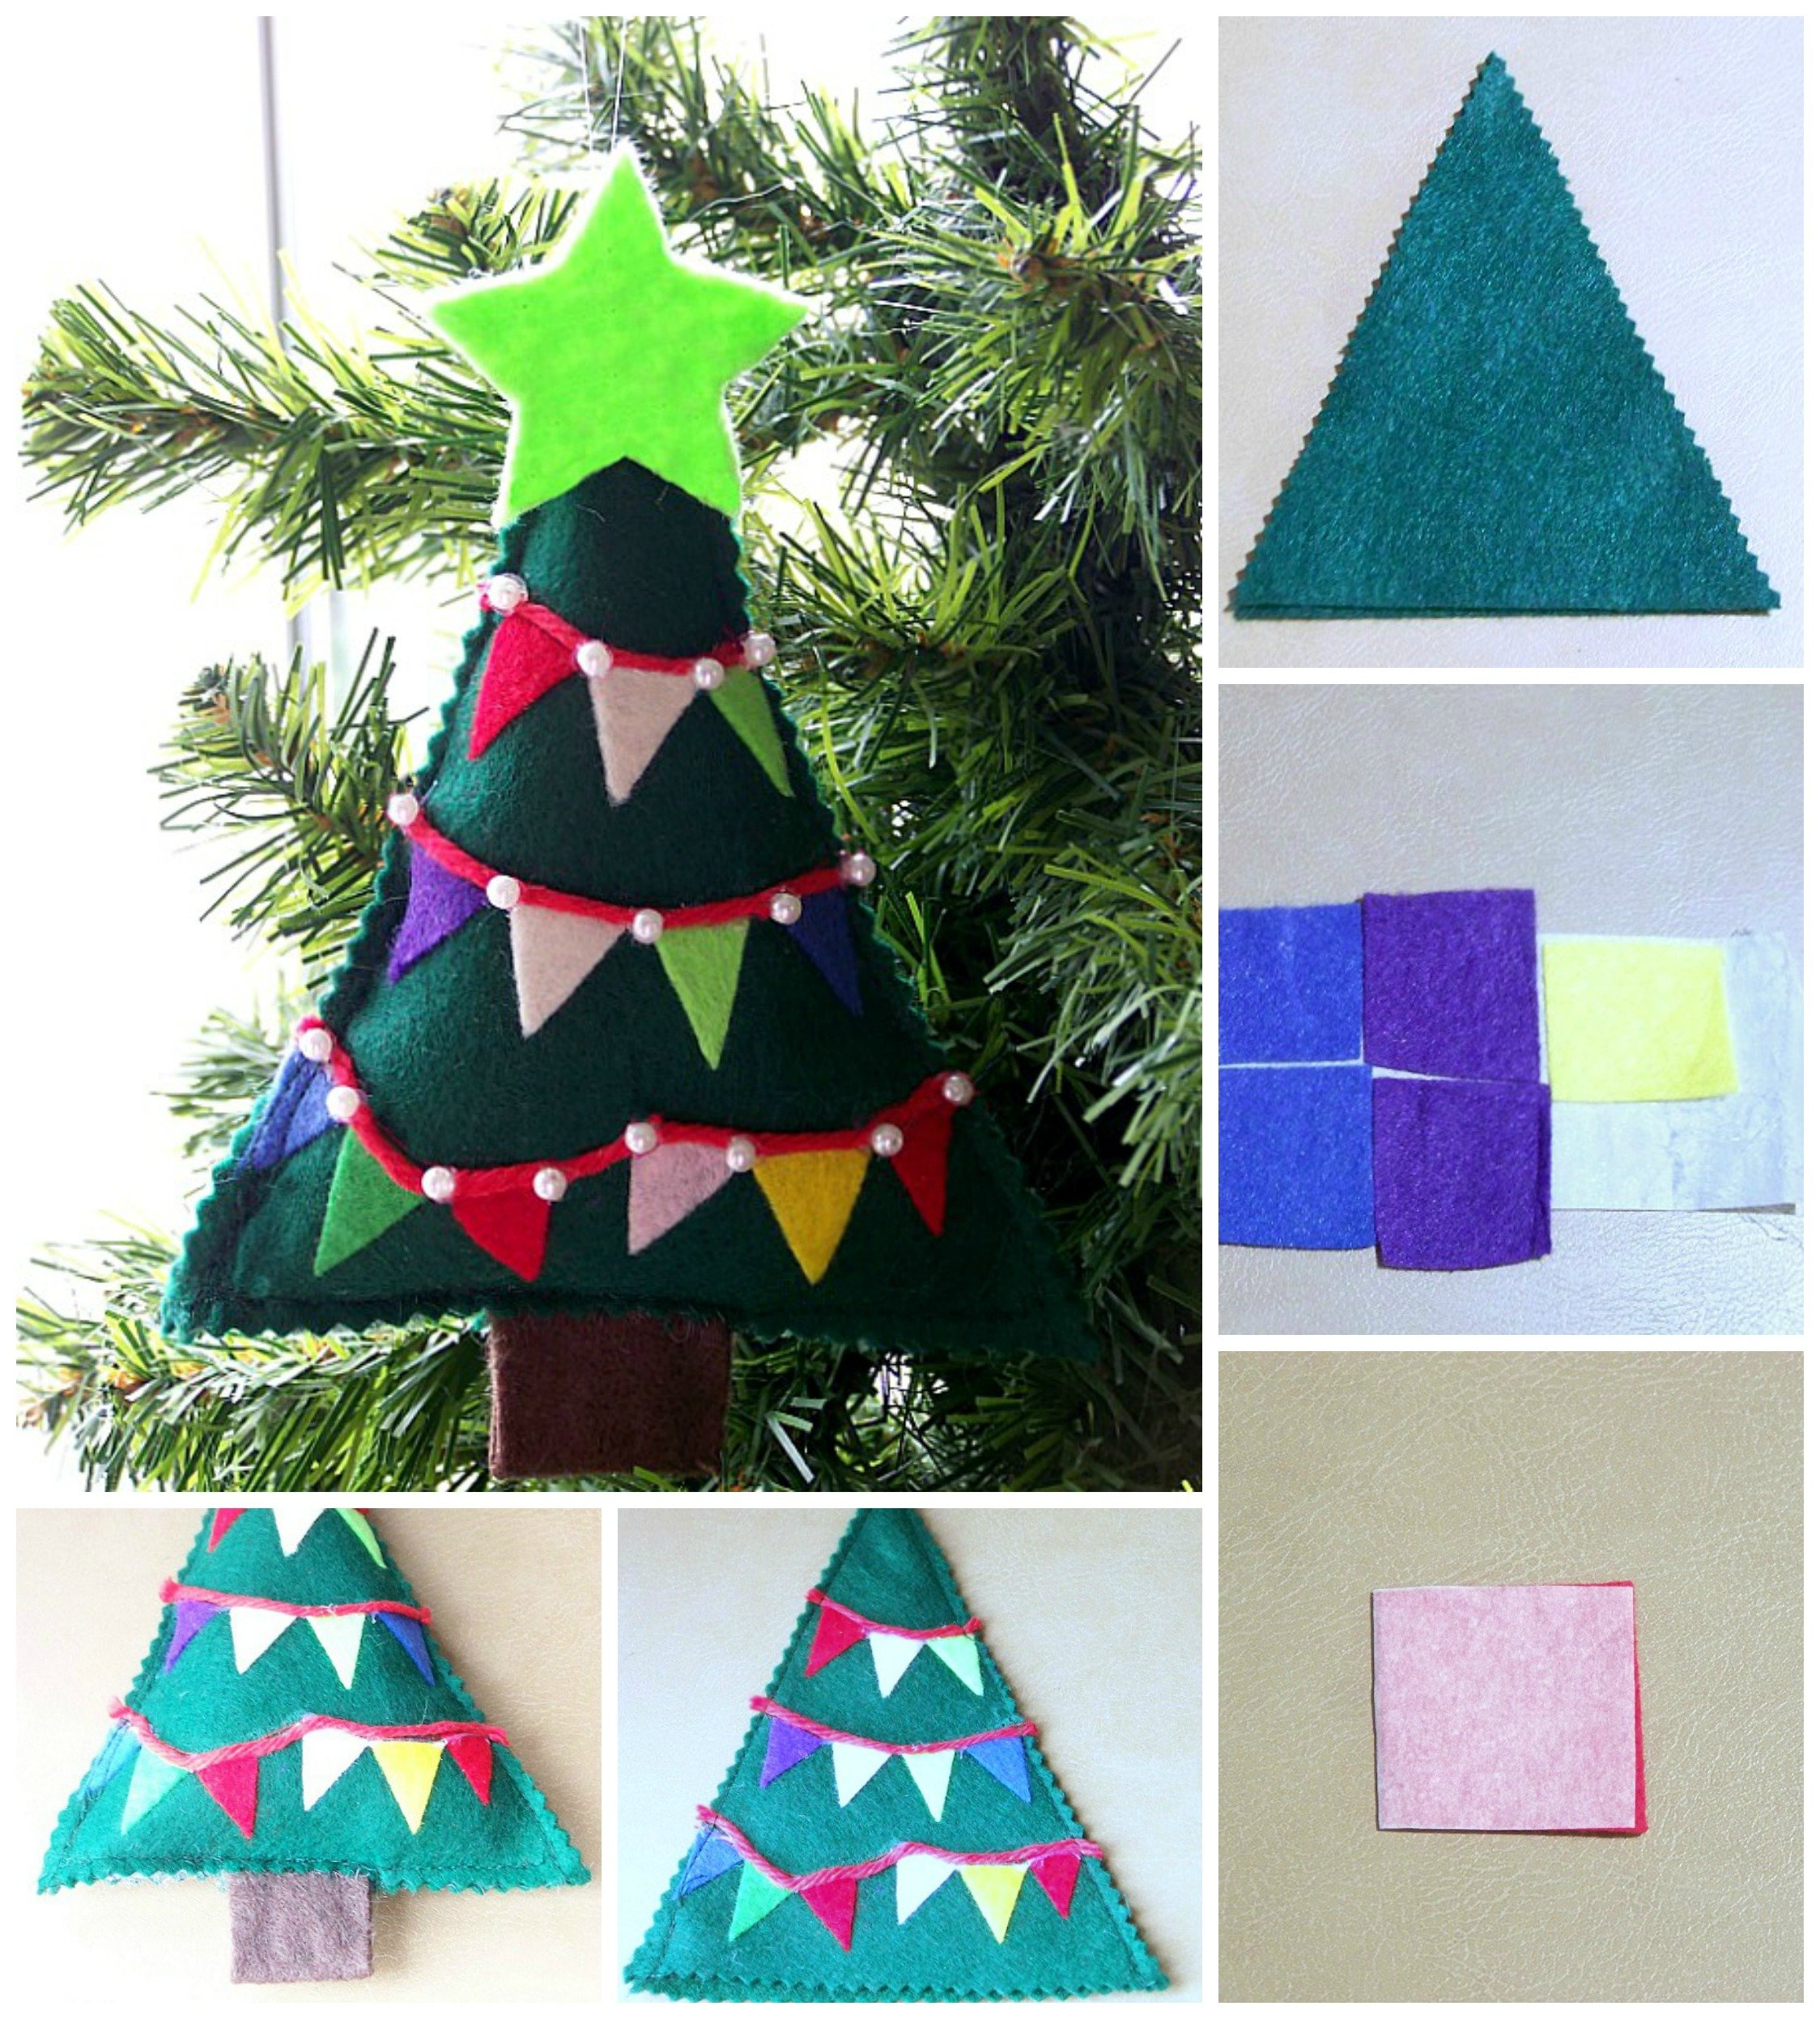 Felt Christmas Tree Tutorial